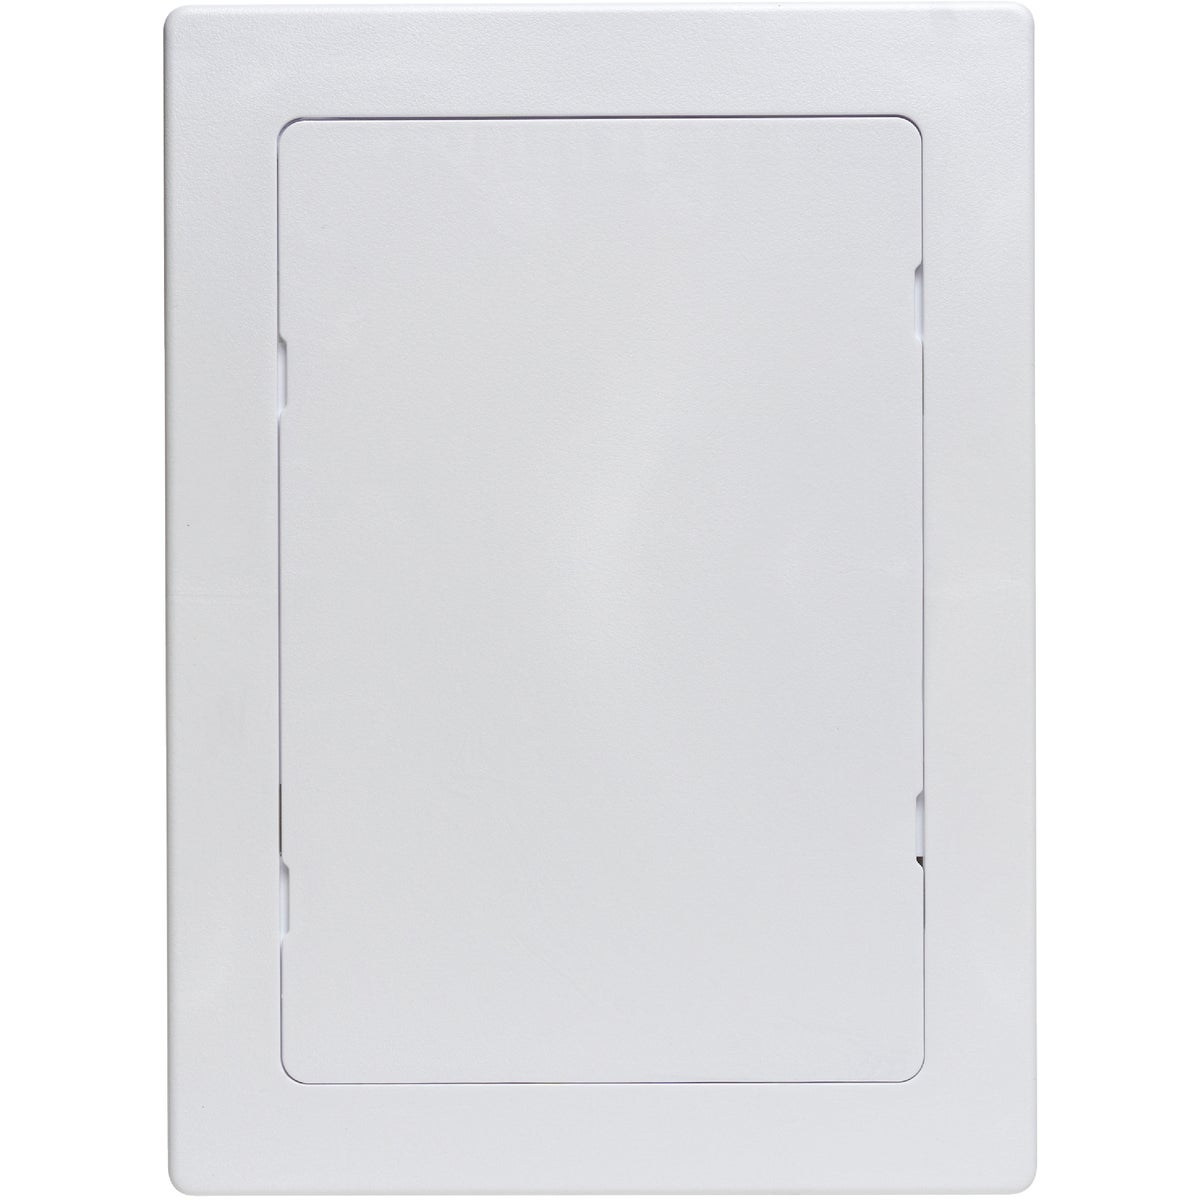 6X9 ACCESS PANEL - 34055 by Oatey Scs